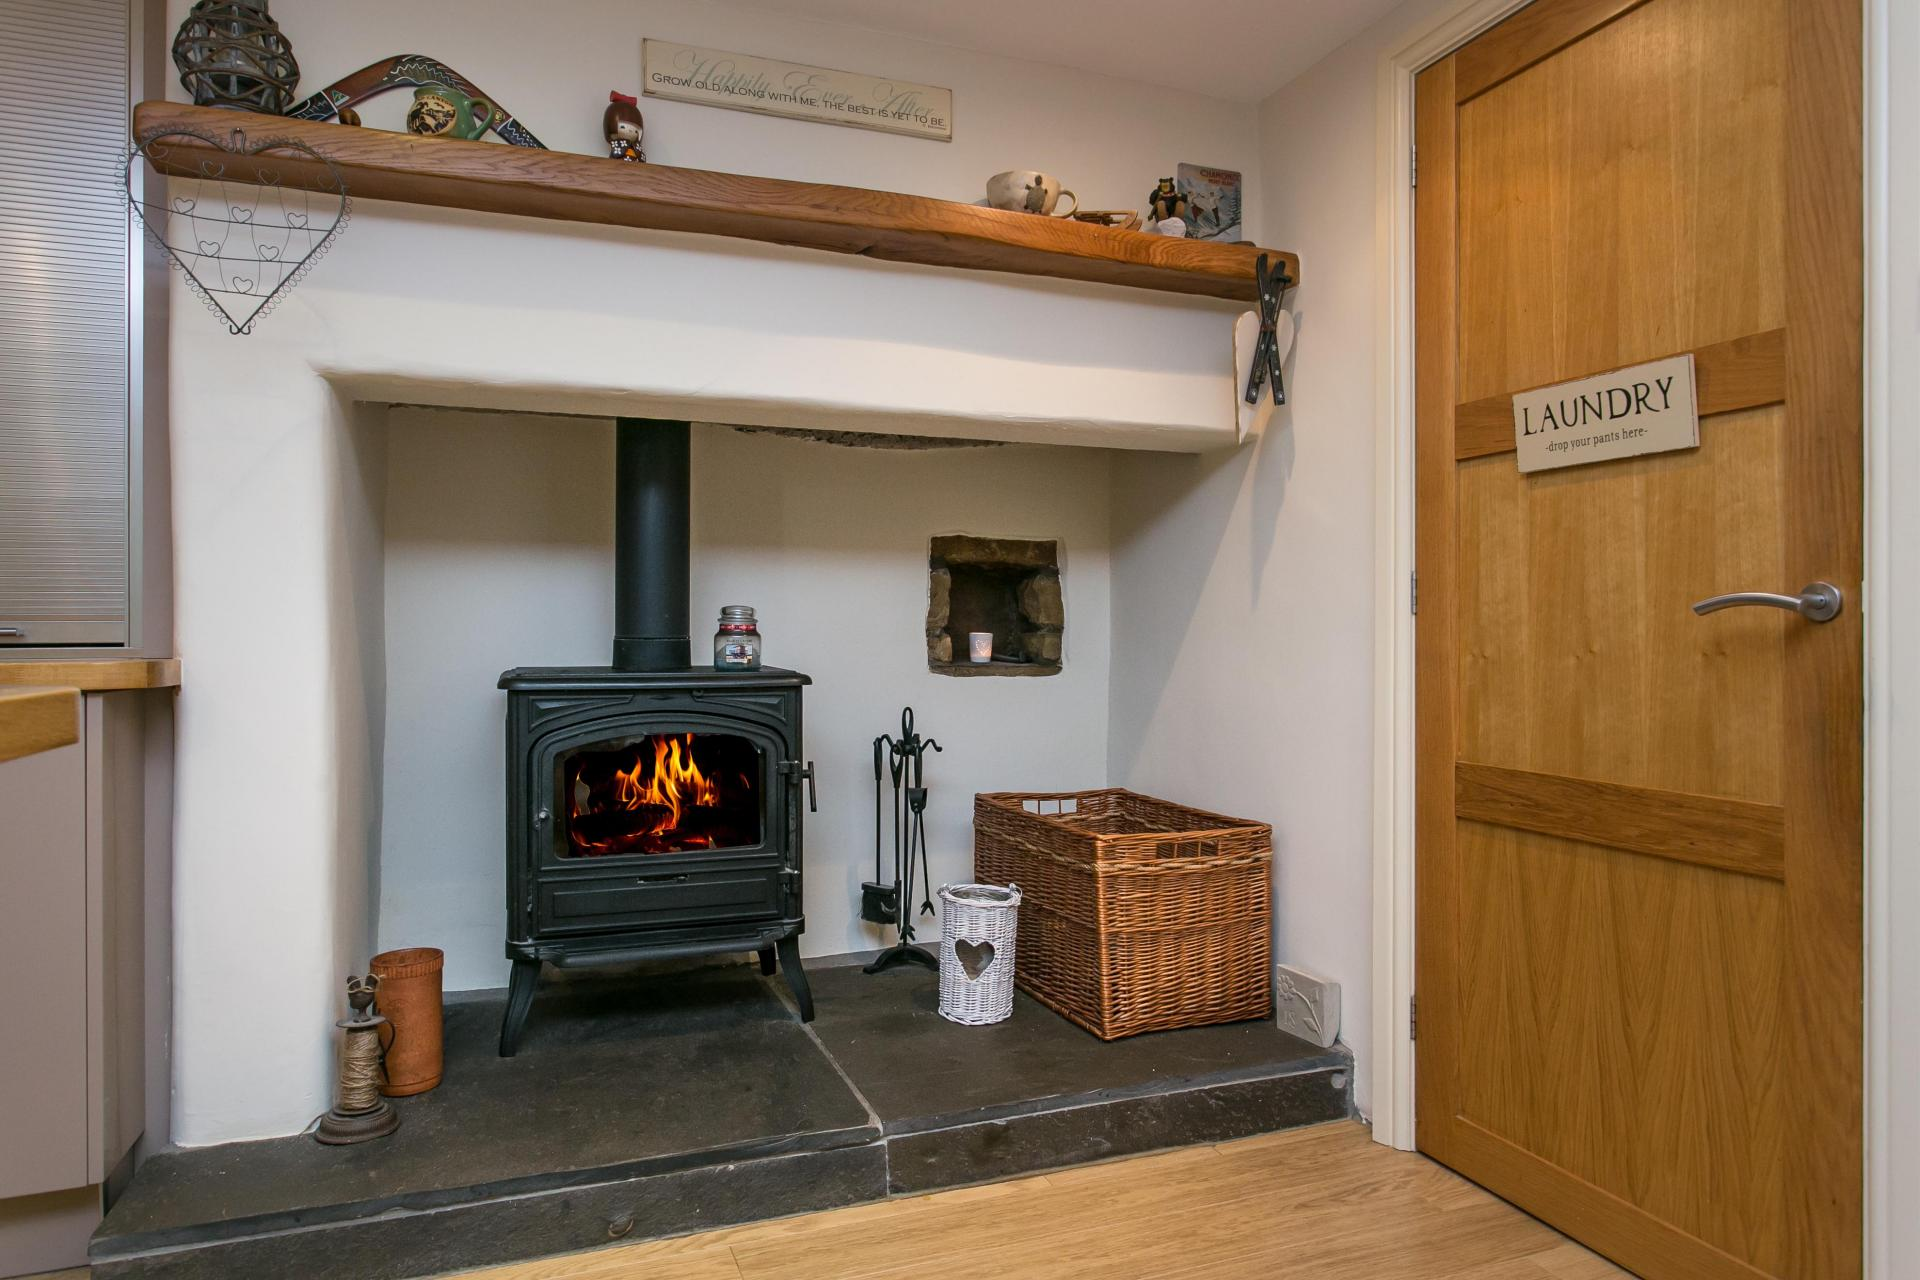 4 bedroom house for sale in tatham lancaster